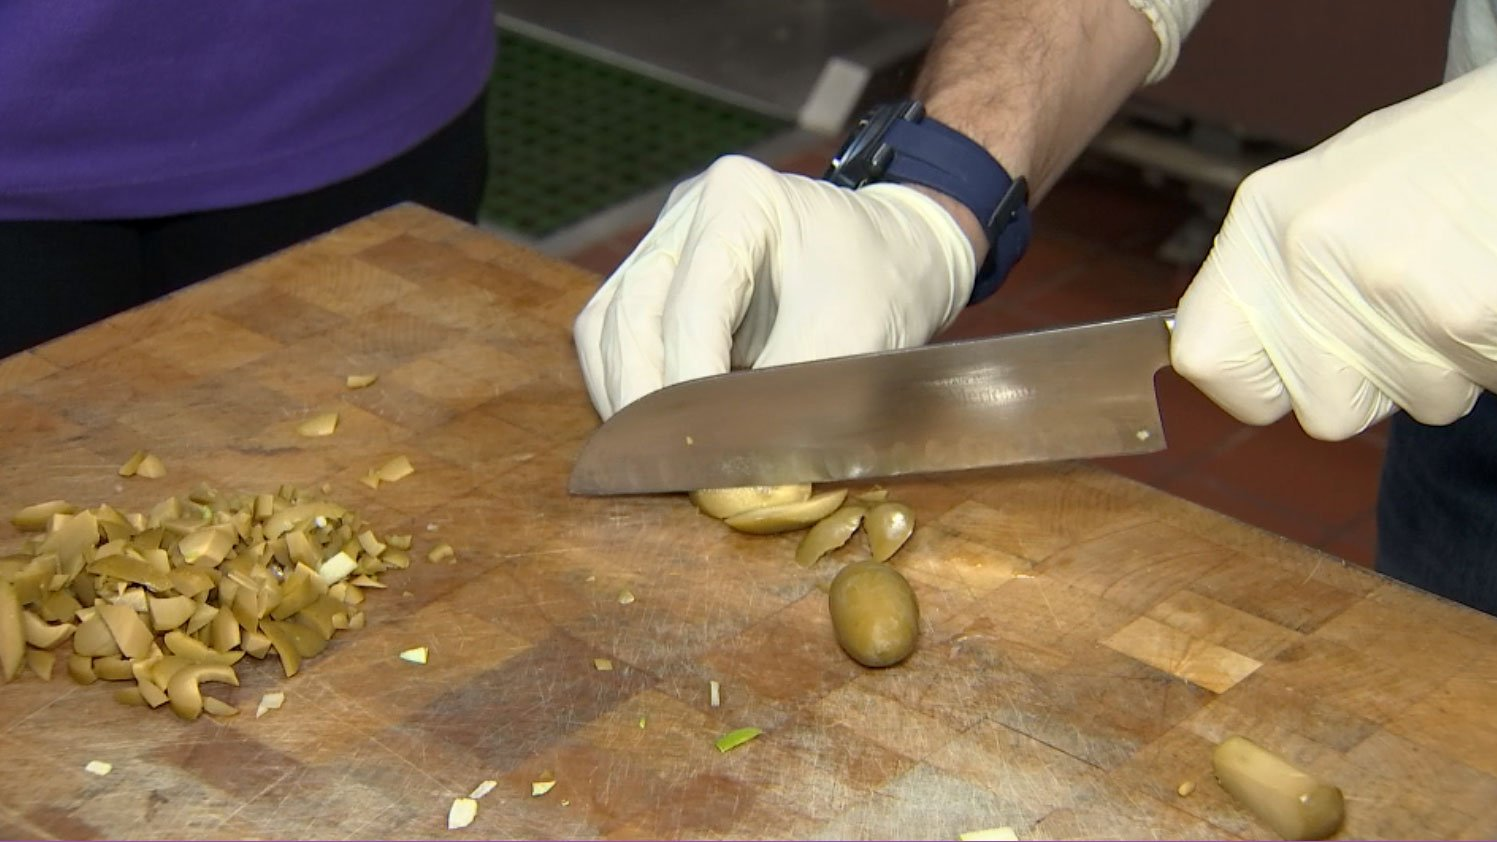 Preparations are underway at Catholic Charities for its annual Thanksgiving meal. (Gai Phanalasy/FOX5)